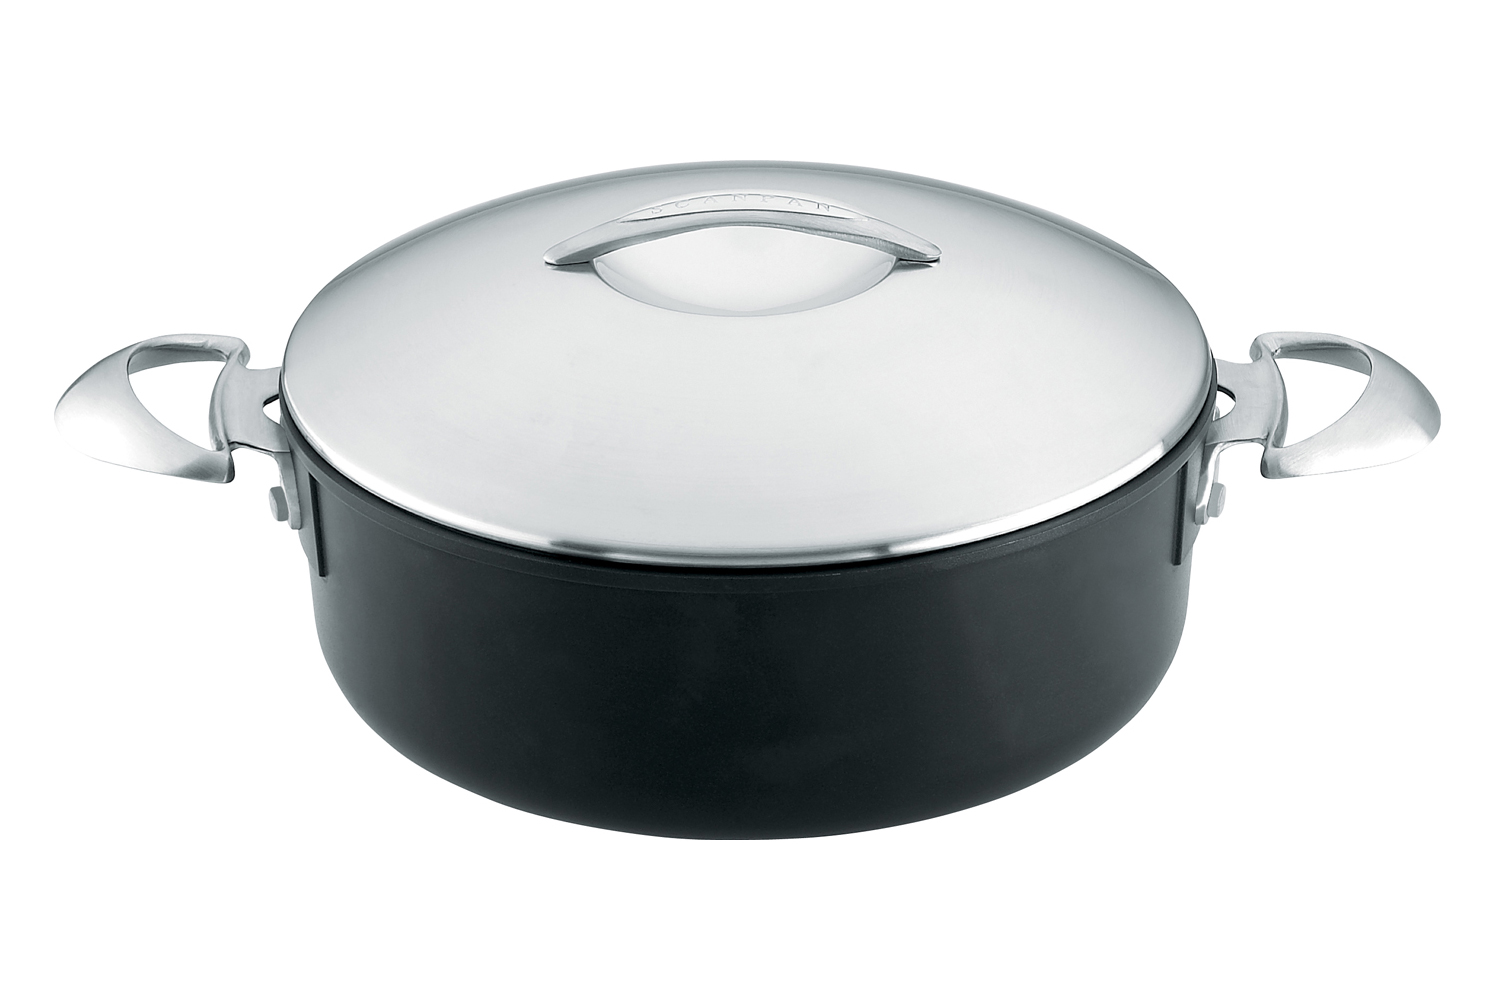 Scanpan Professional 4 1/2 qt. Nonstick Low Sauce Pot